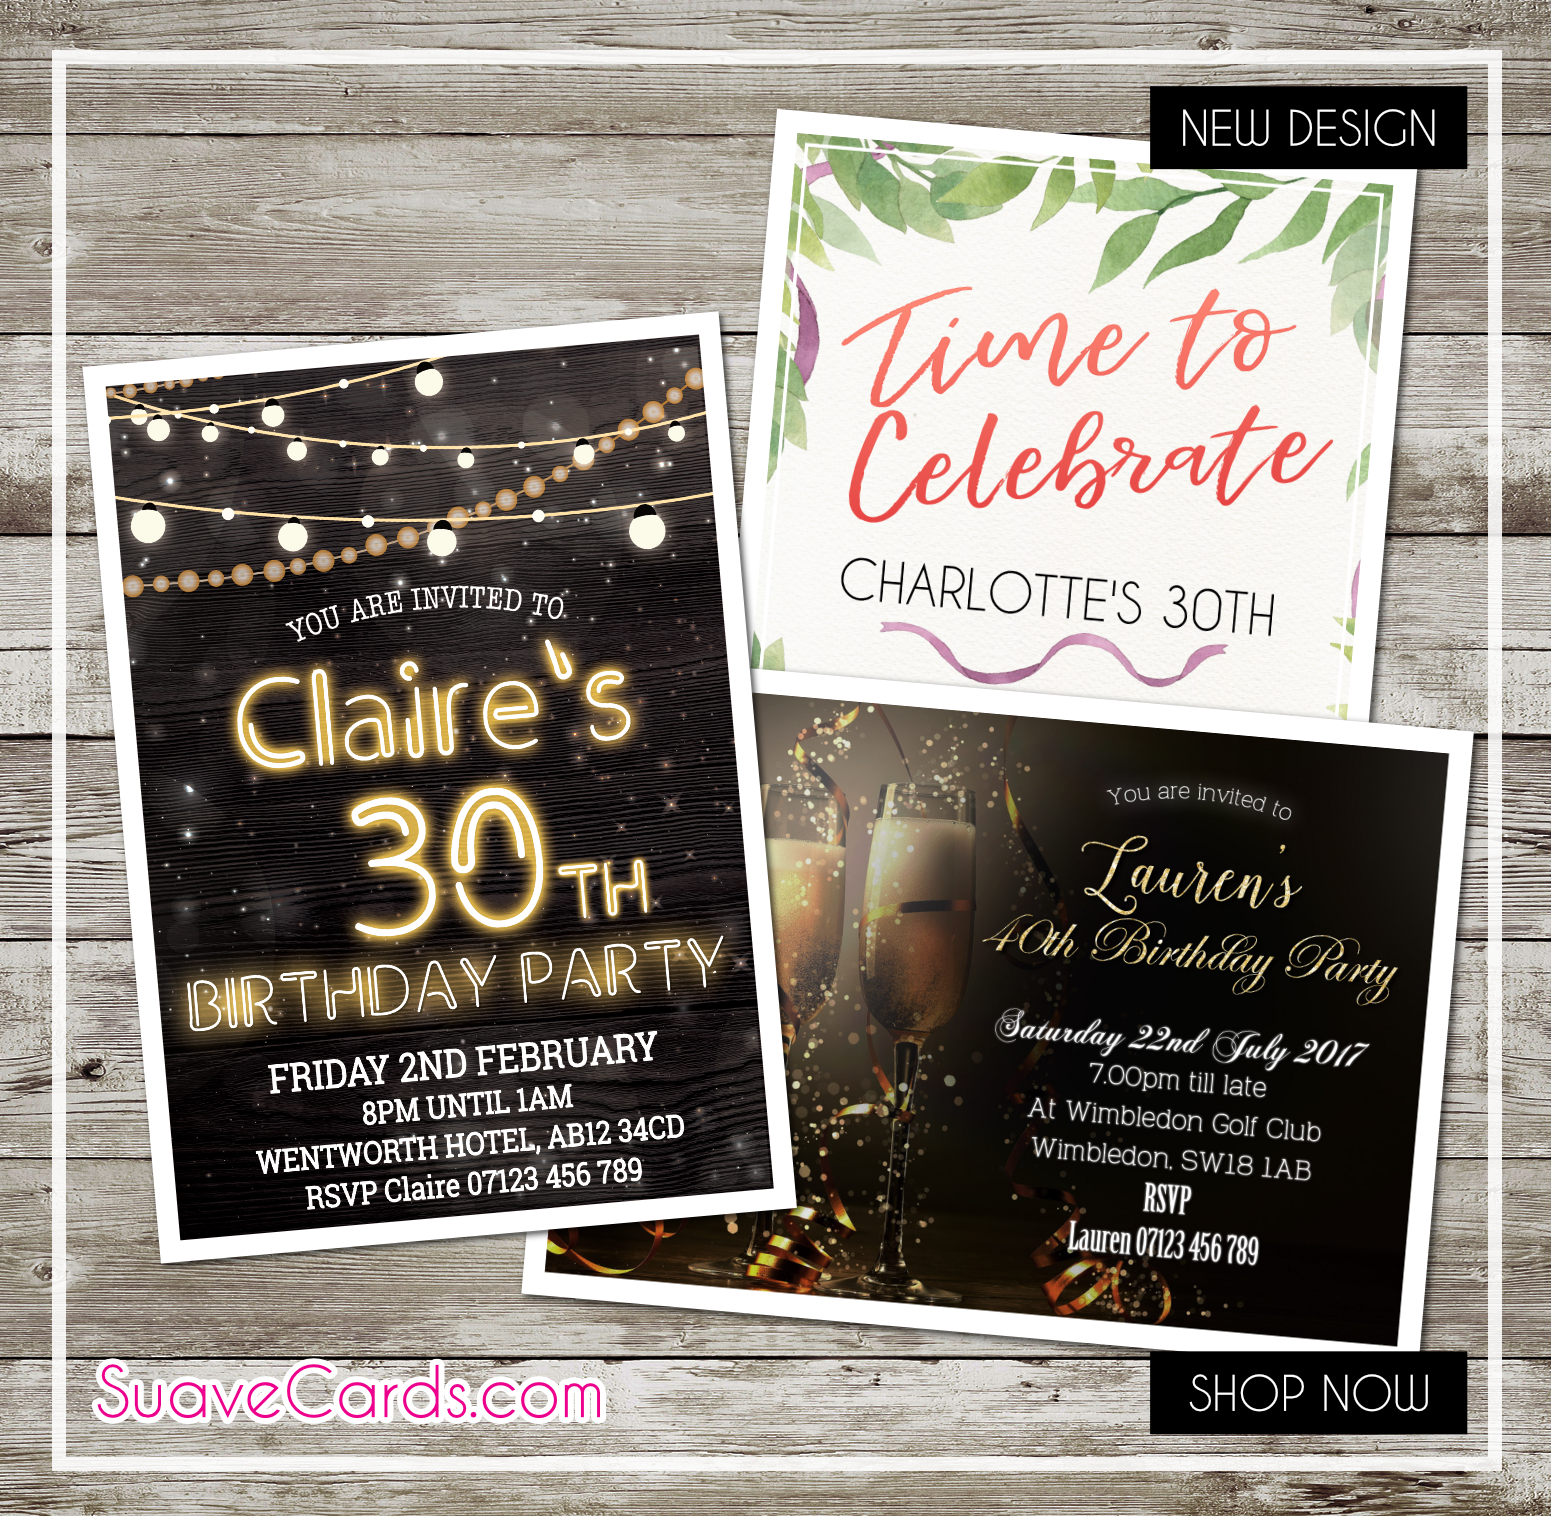 Personalised Birthday Invitations Party Invites for 40th 50th 60th 30th 21st